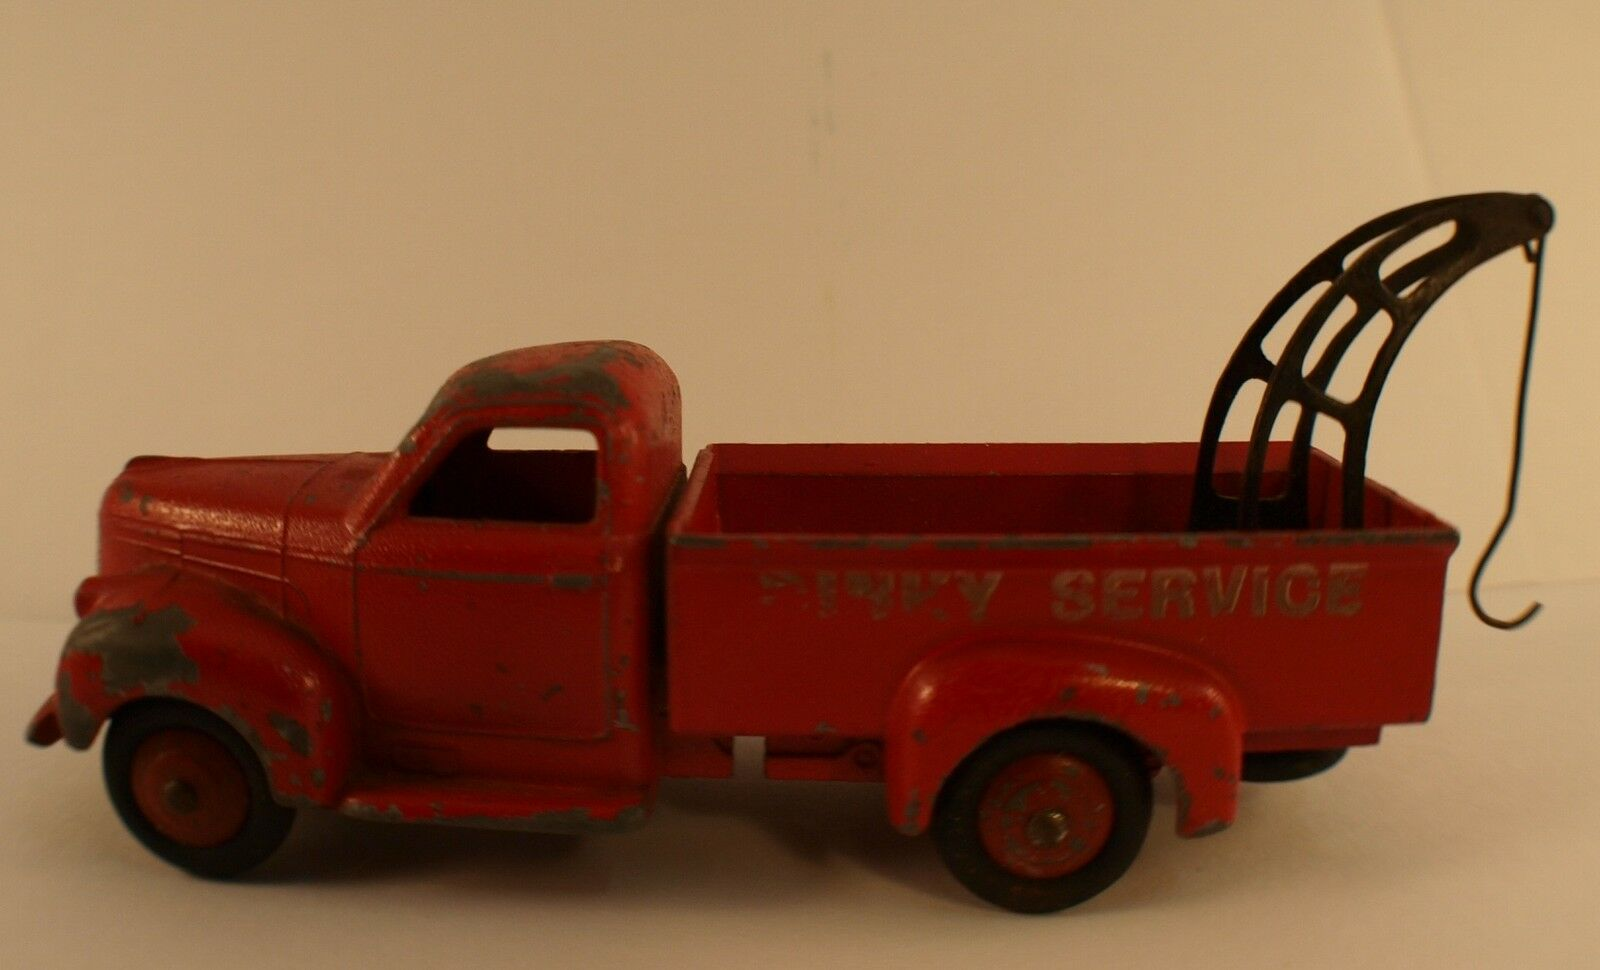 Dinky Juguetes F 25R Studebaker Dépannage Dinky Juguetes Cabine type 2